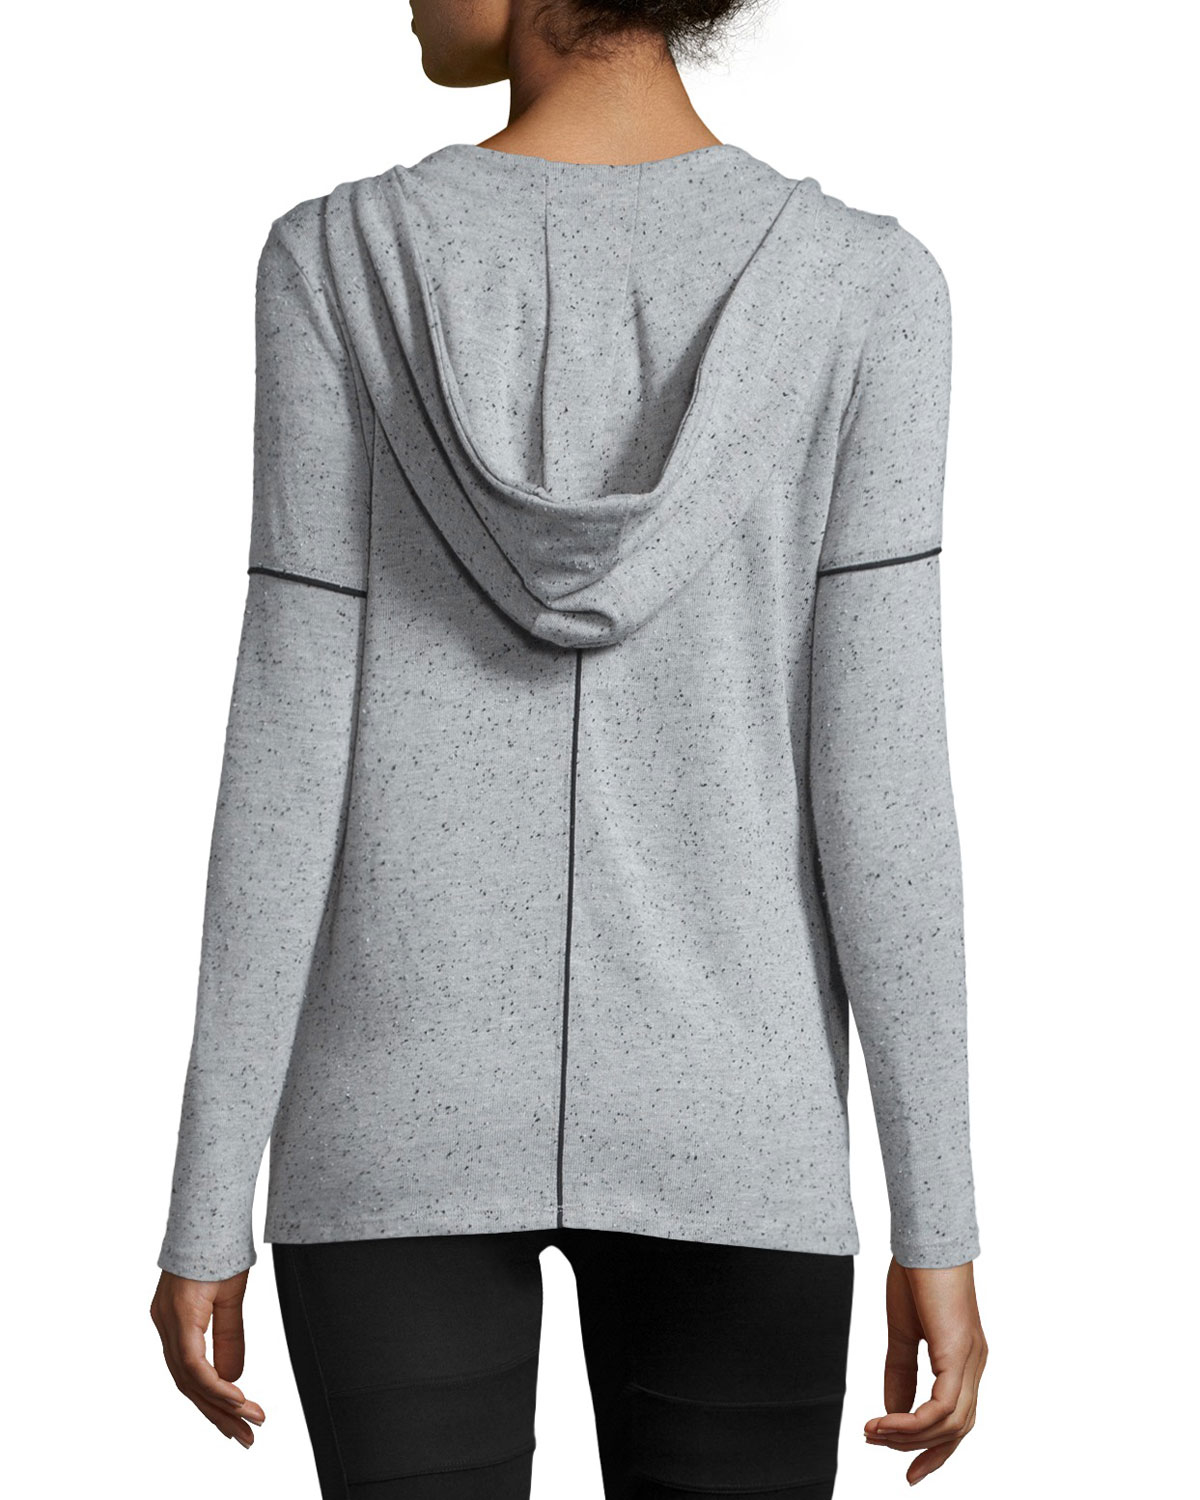 Koral activewear Flash Speckled-print Hooded Cardigan in Gray | Lyst